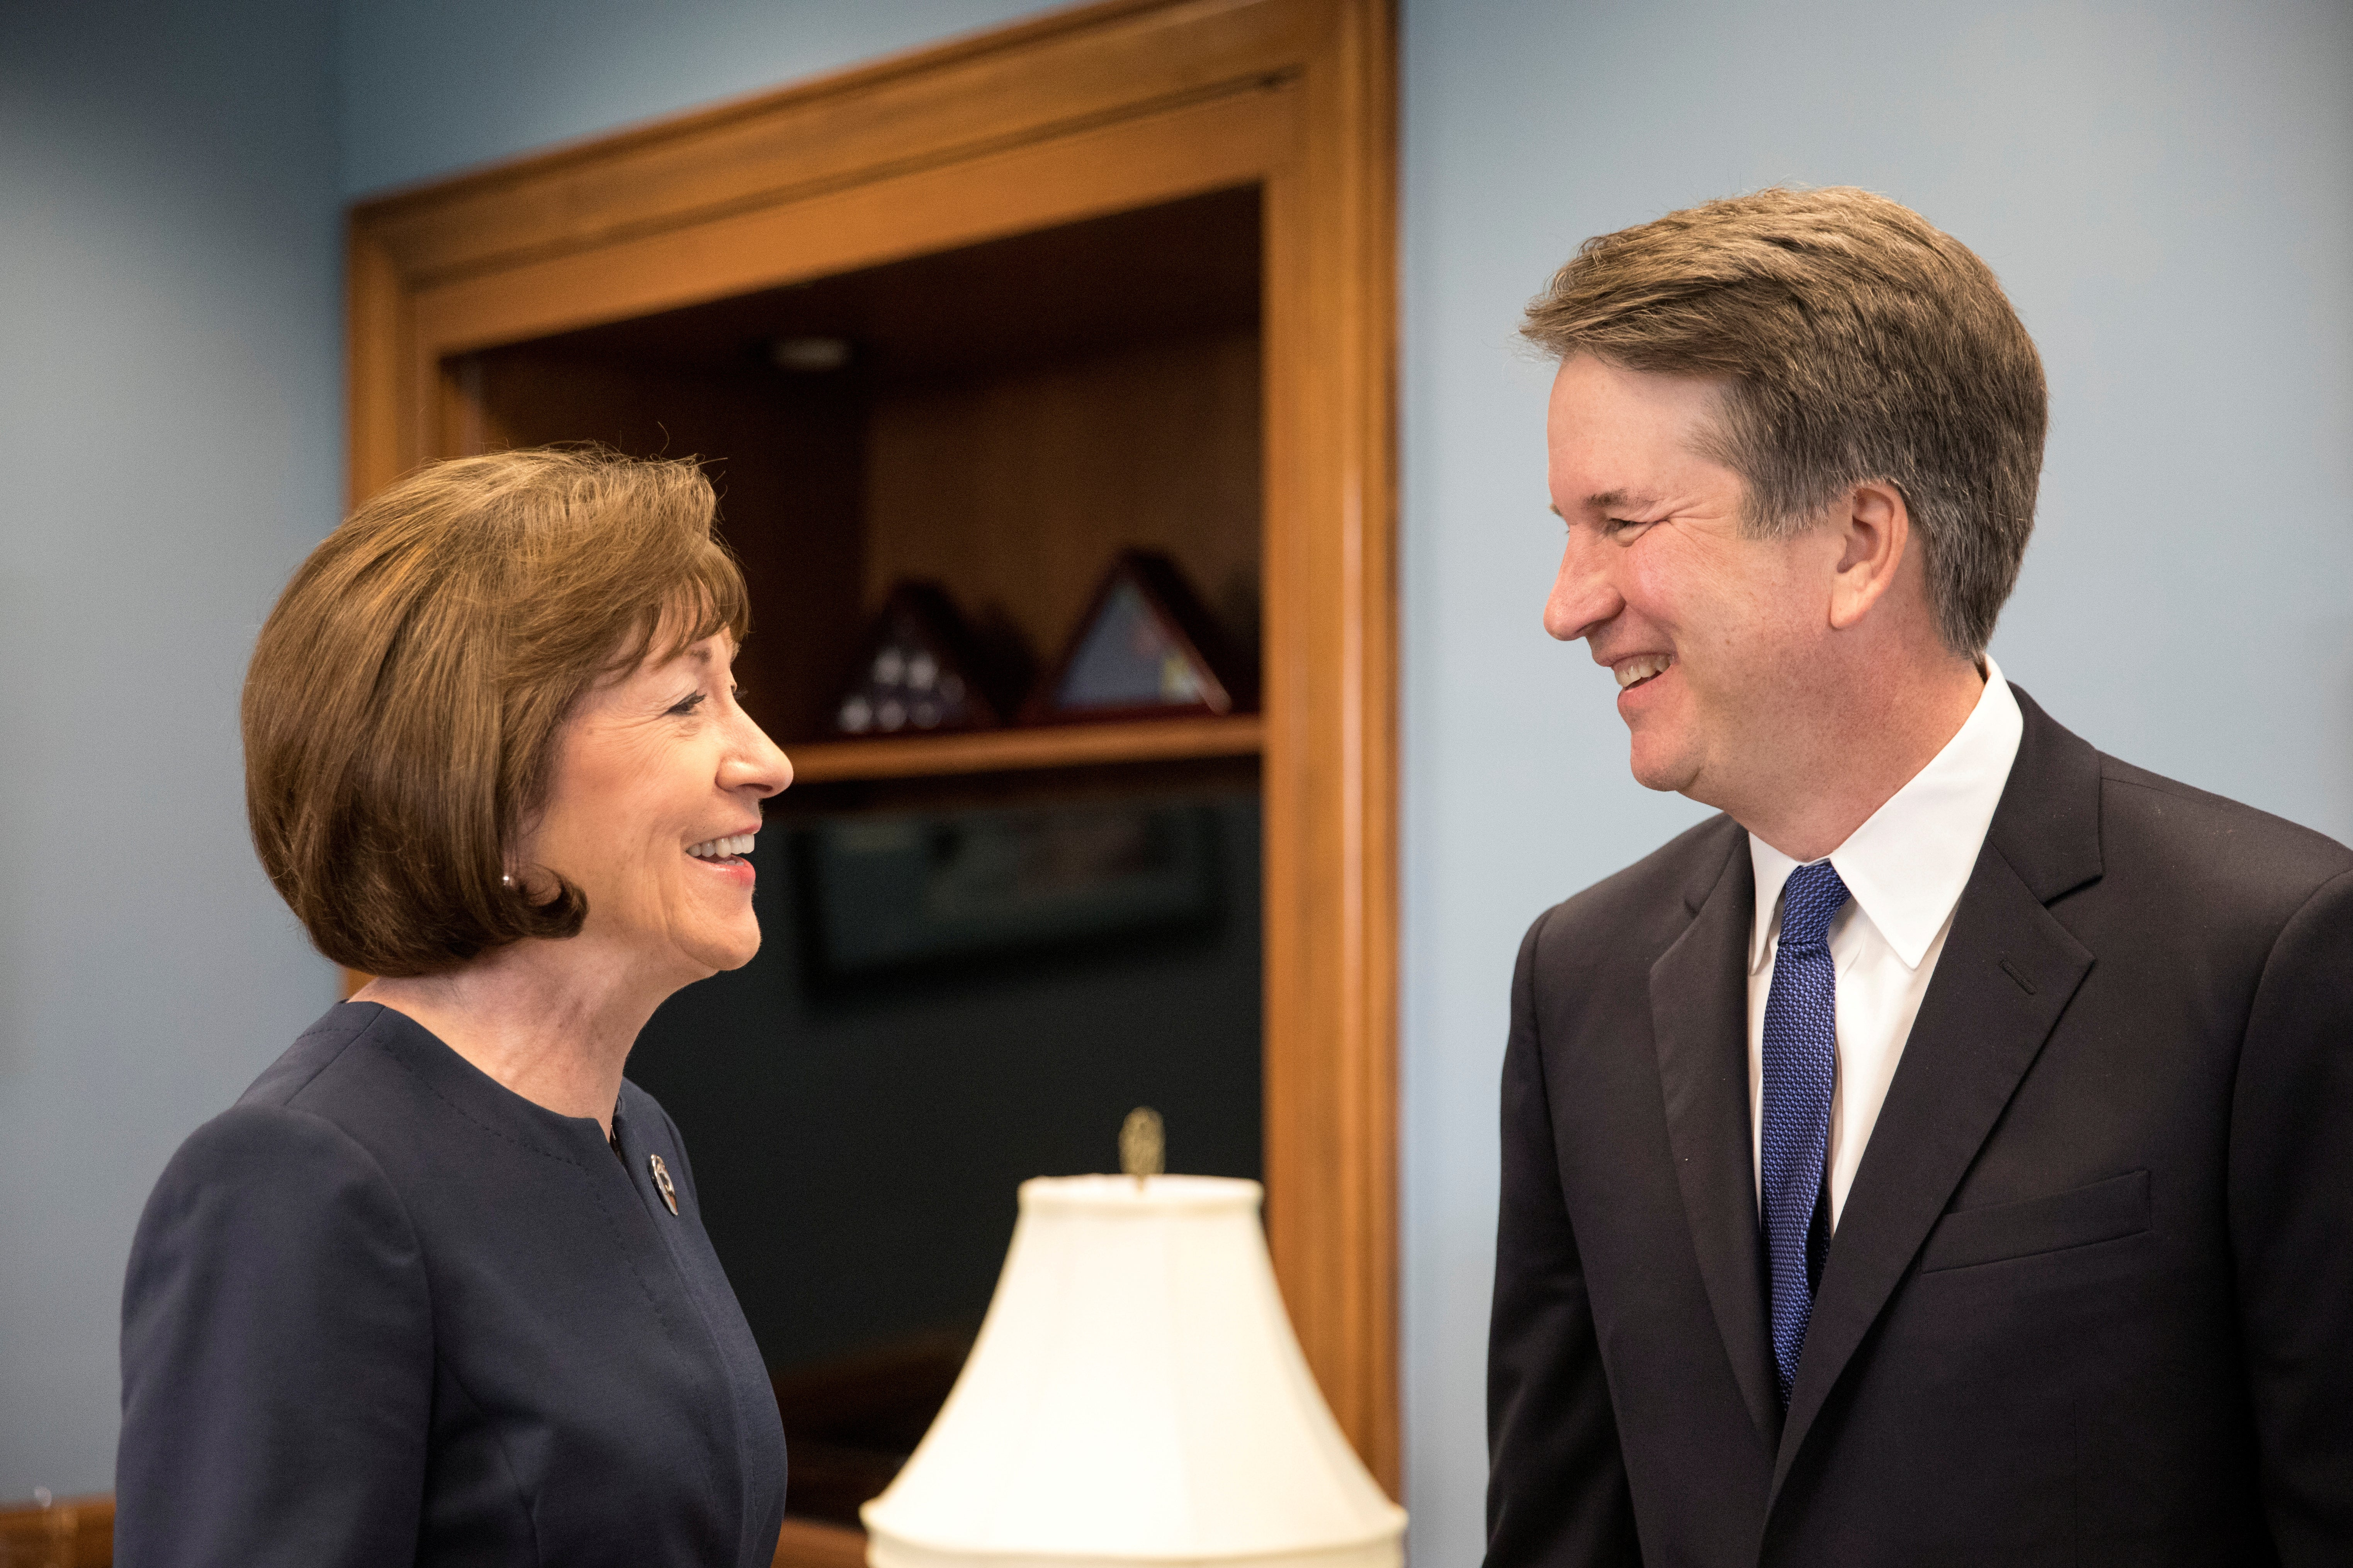 Sen. Susan Collins meets with Brett Kavanaugh before voting to confirm him to the Supreme Court.